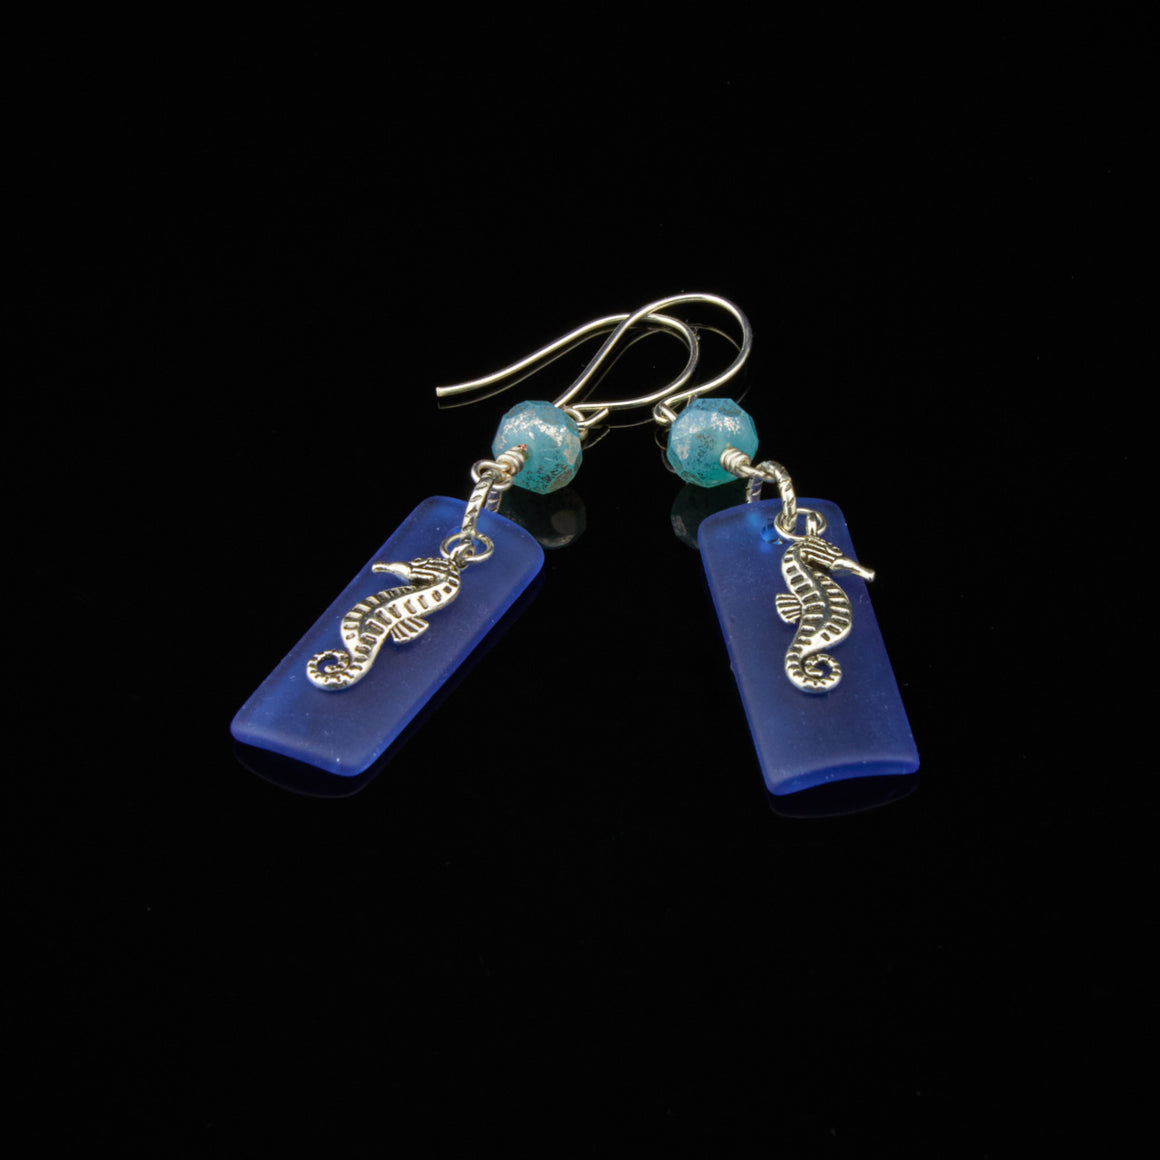 Horses of the Reef Earrings